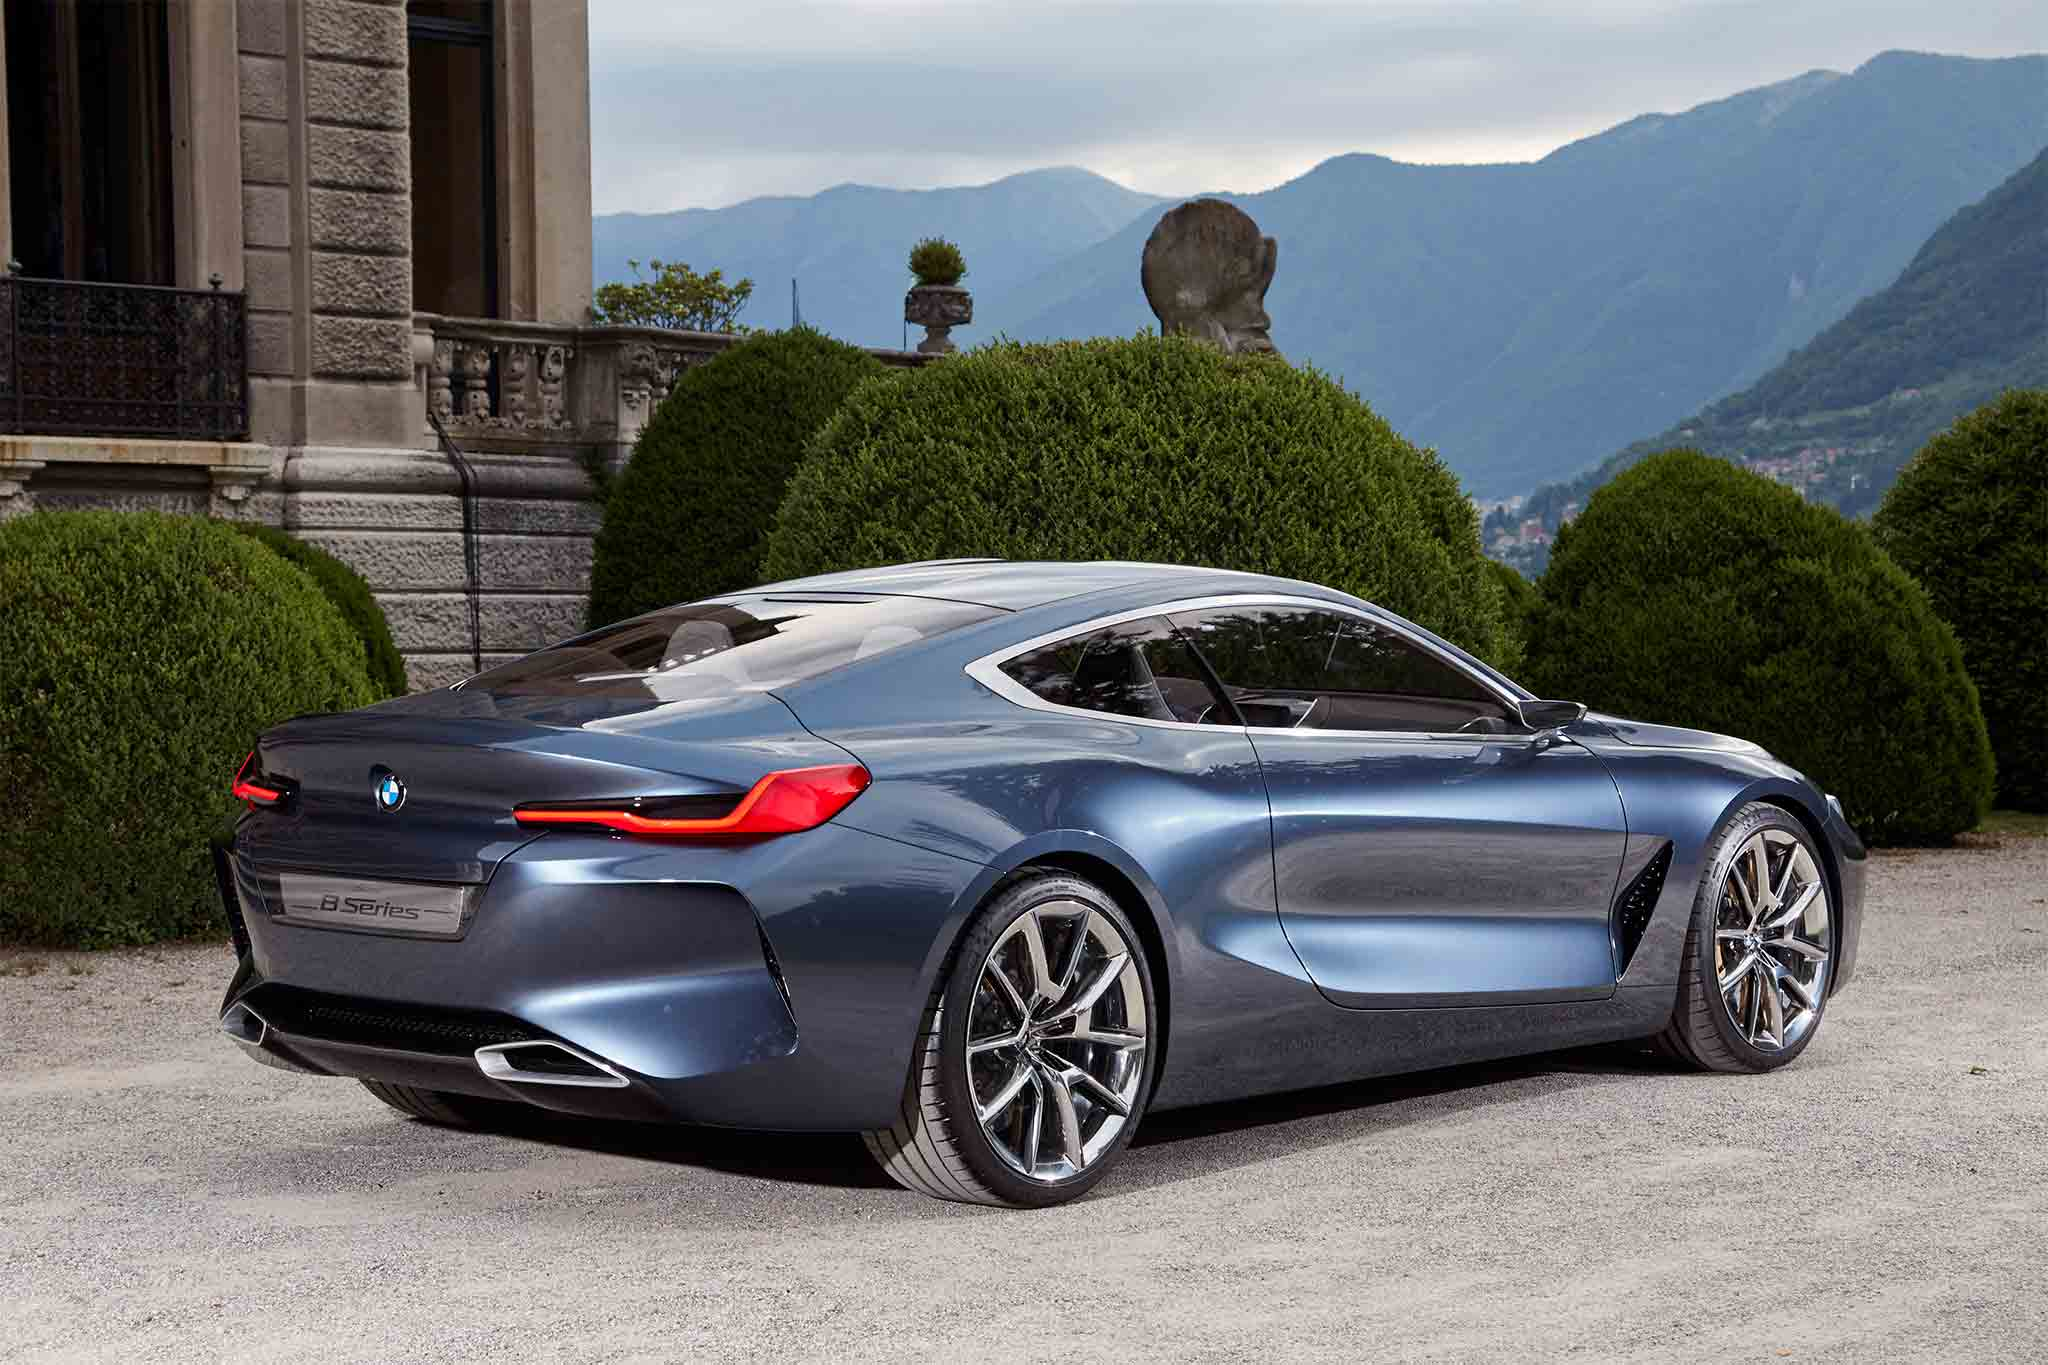 BMW 8 Series Gran Coupe Shows Its Striking Silhouette